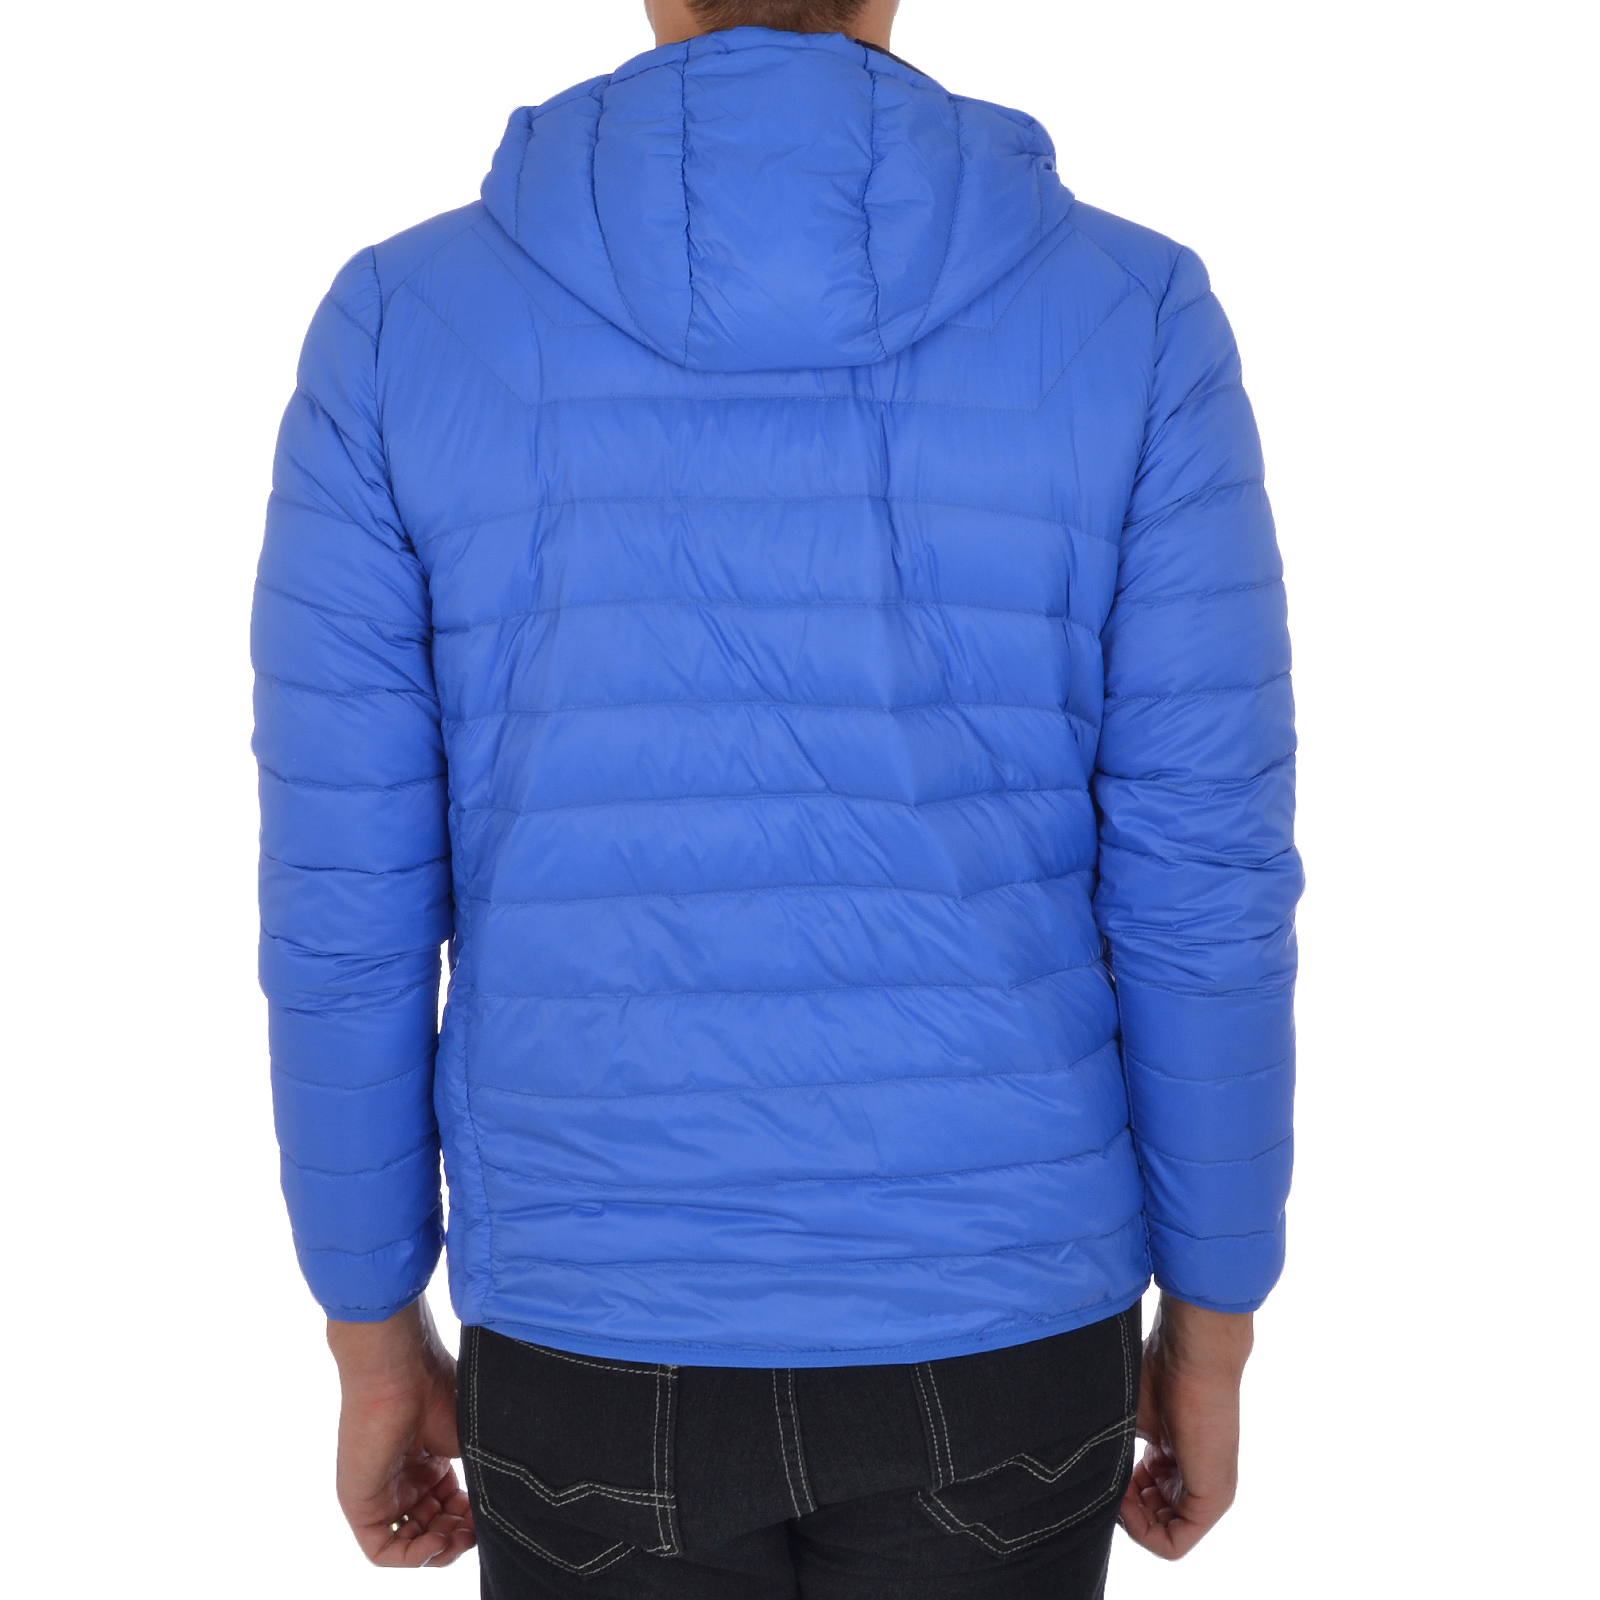 Find a great selection of down & puffer jackets for women at fefdinterested.gq Shop from top brands like Patagonia, The North Face, Canada Goose & more. Free shipping & returns.